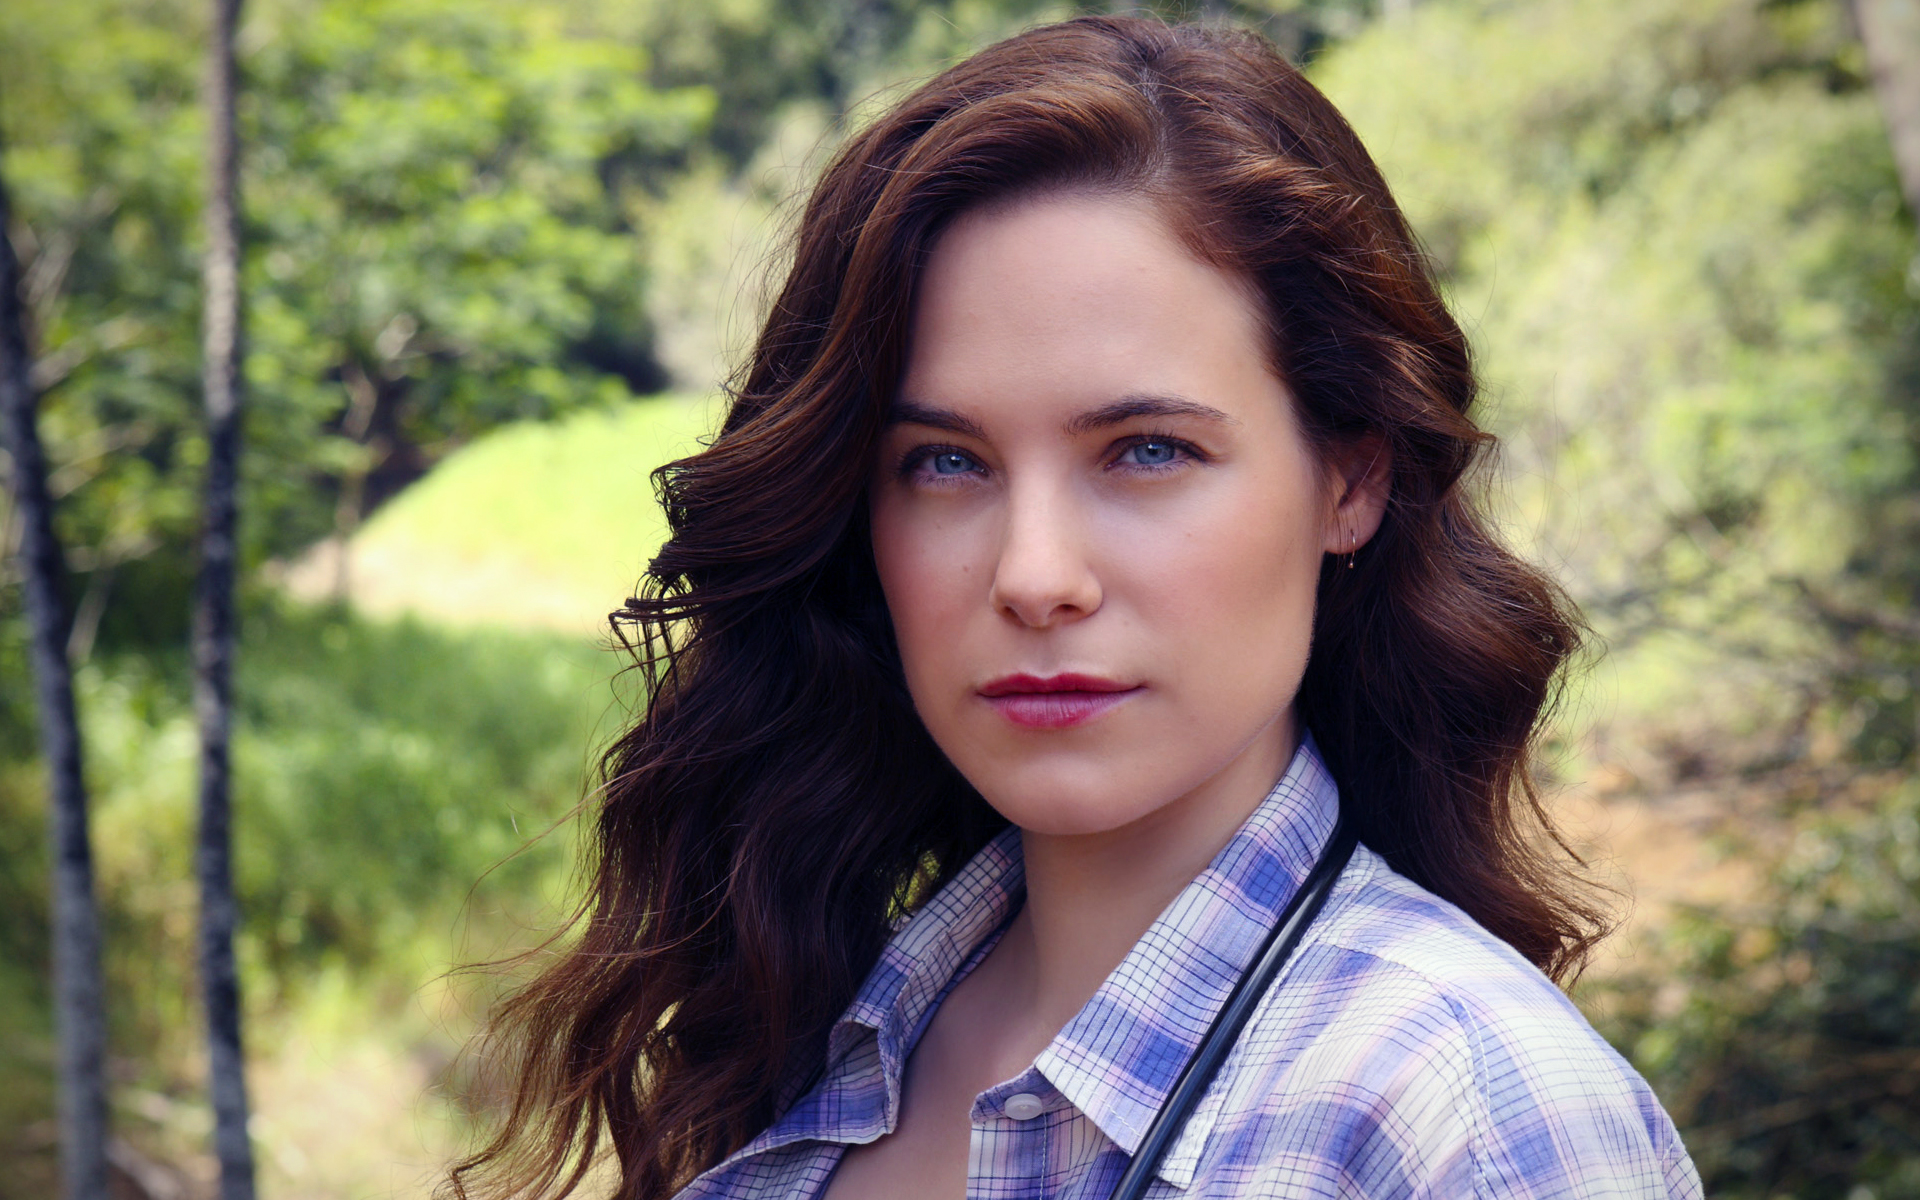 caroline dhavernas wikipediacaroline dhavernas hannibal, caroline dhavernas listal, caroline dhavernas lise watier, caroline dhavernas family, caroline dhavernas instagram, caroline dhavernas wikipedia, caroline dhavernas fansite, caroline dhavernas husband, caroline dhavernas, caroline dhavernas boyfriend, caroline dhavernas 2015, caroline dhavernas tumblr, caroline dhavernas interview, caroline dhavernas wonderfalls, caroline dhavernas edge of madness